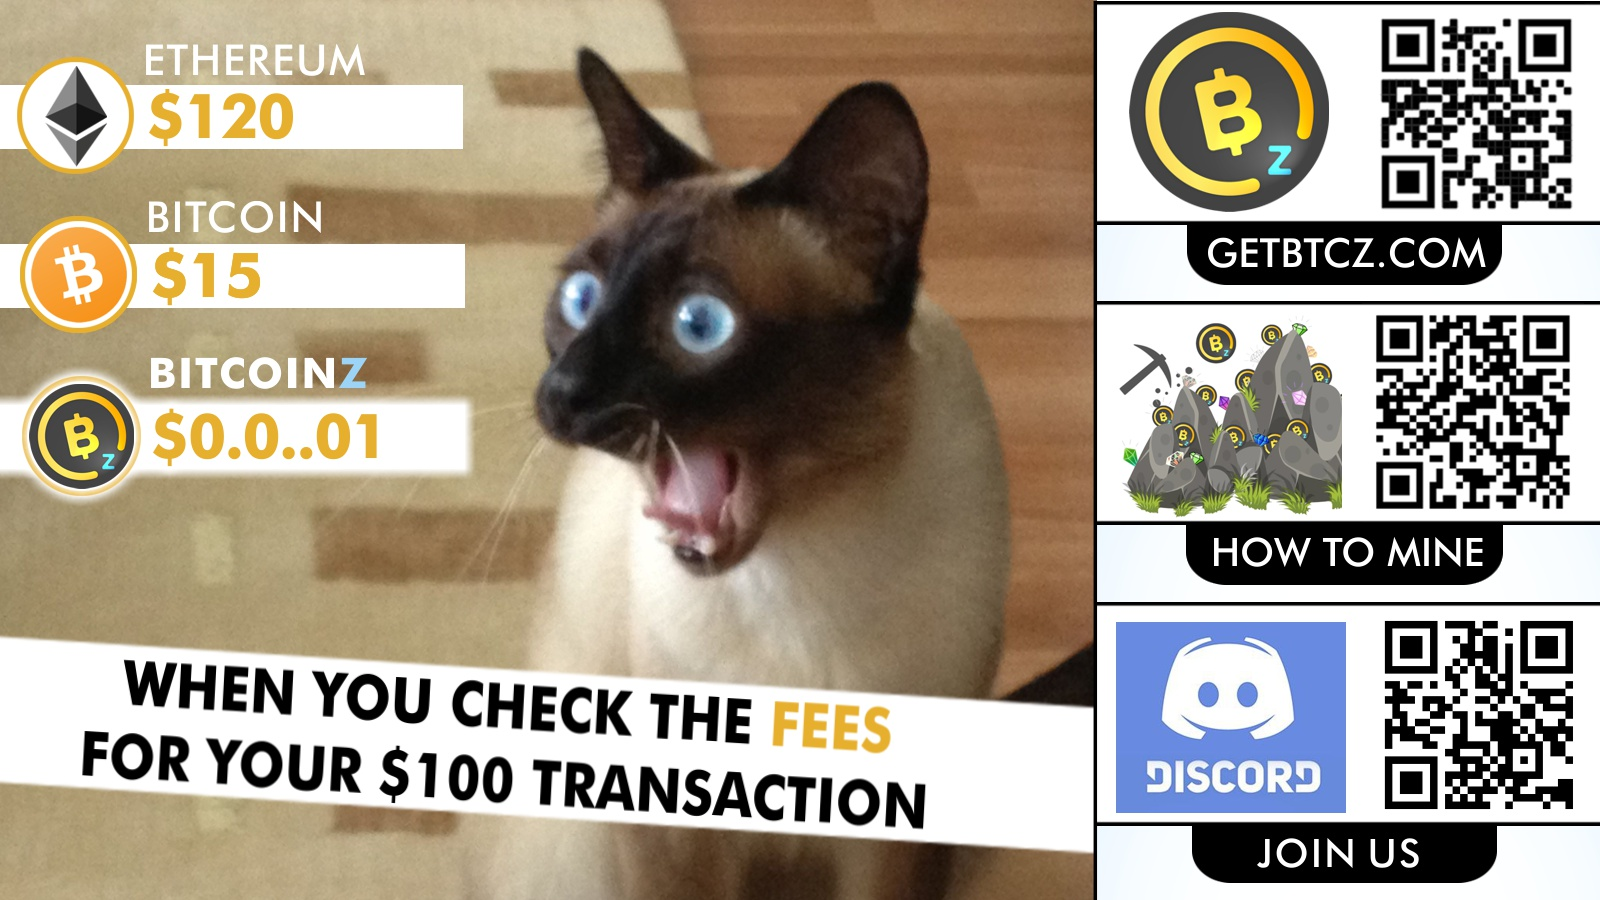 BITCOINZ has the lowest fees ever